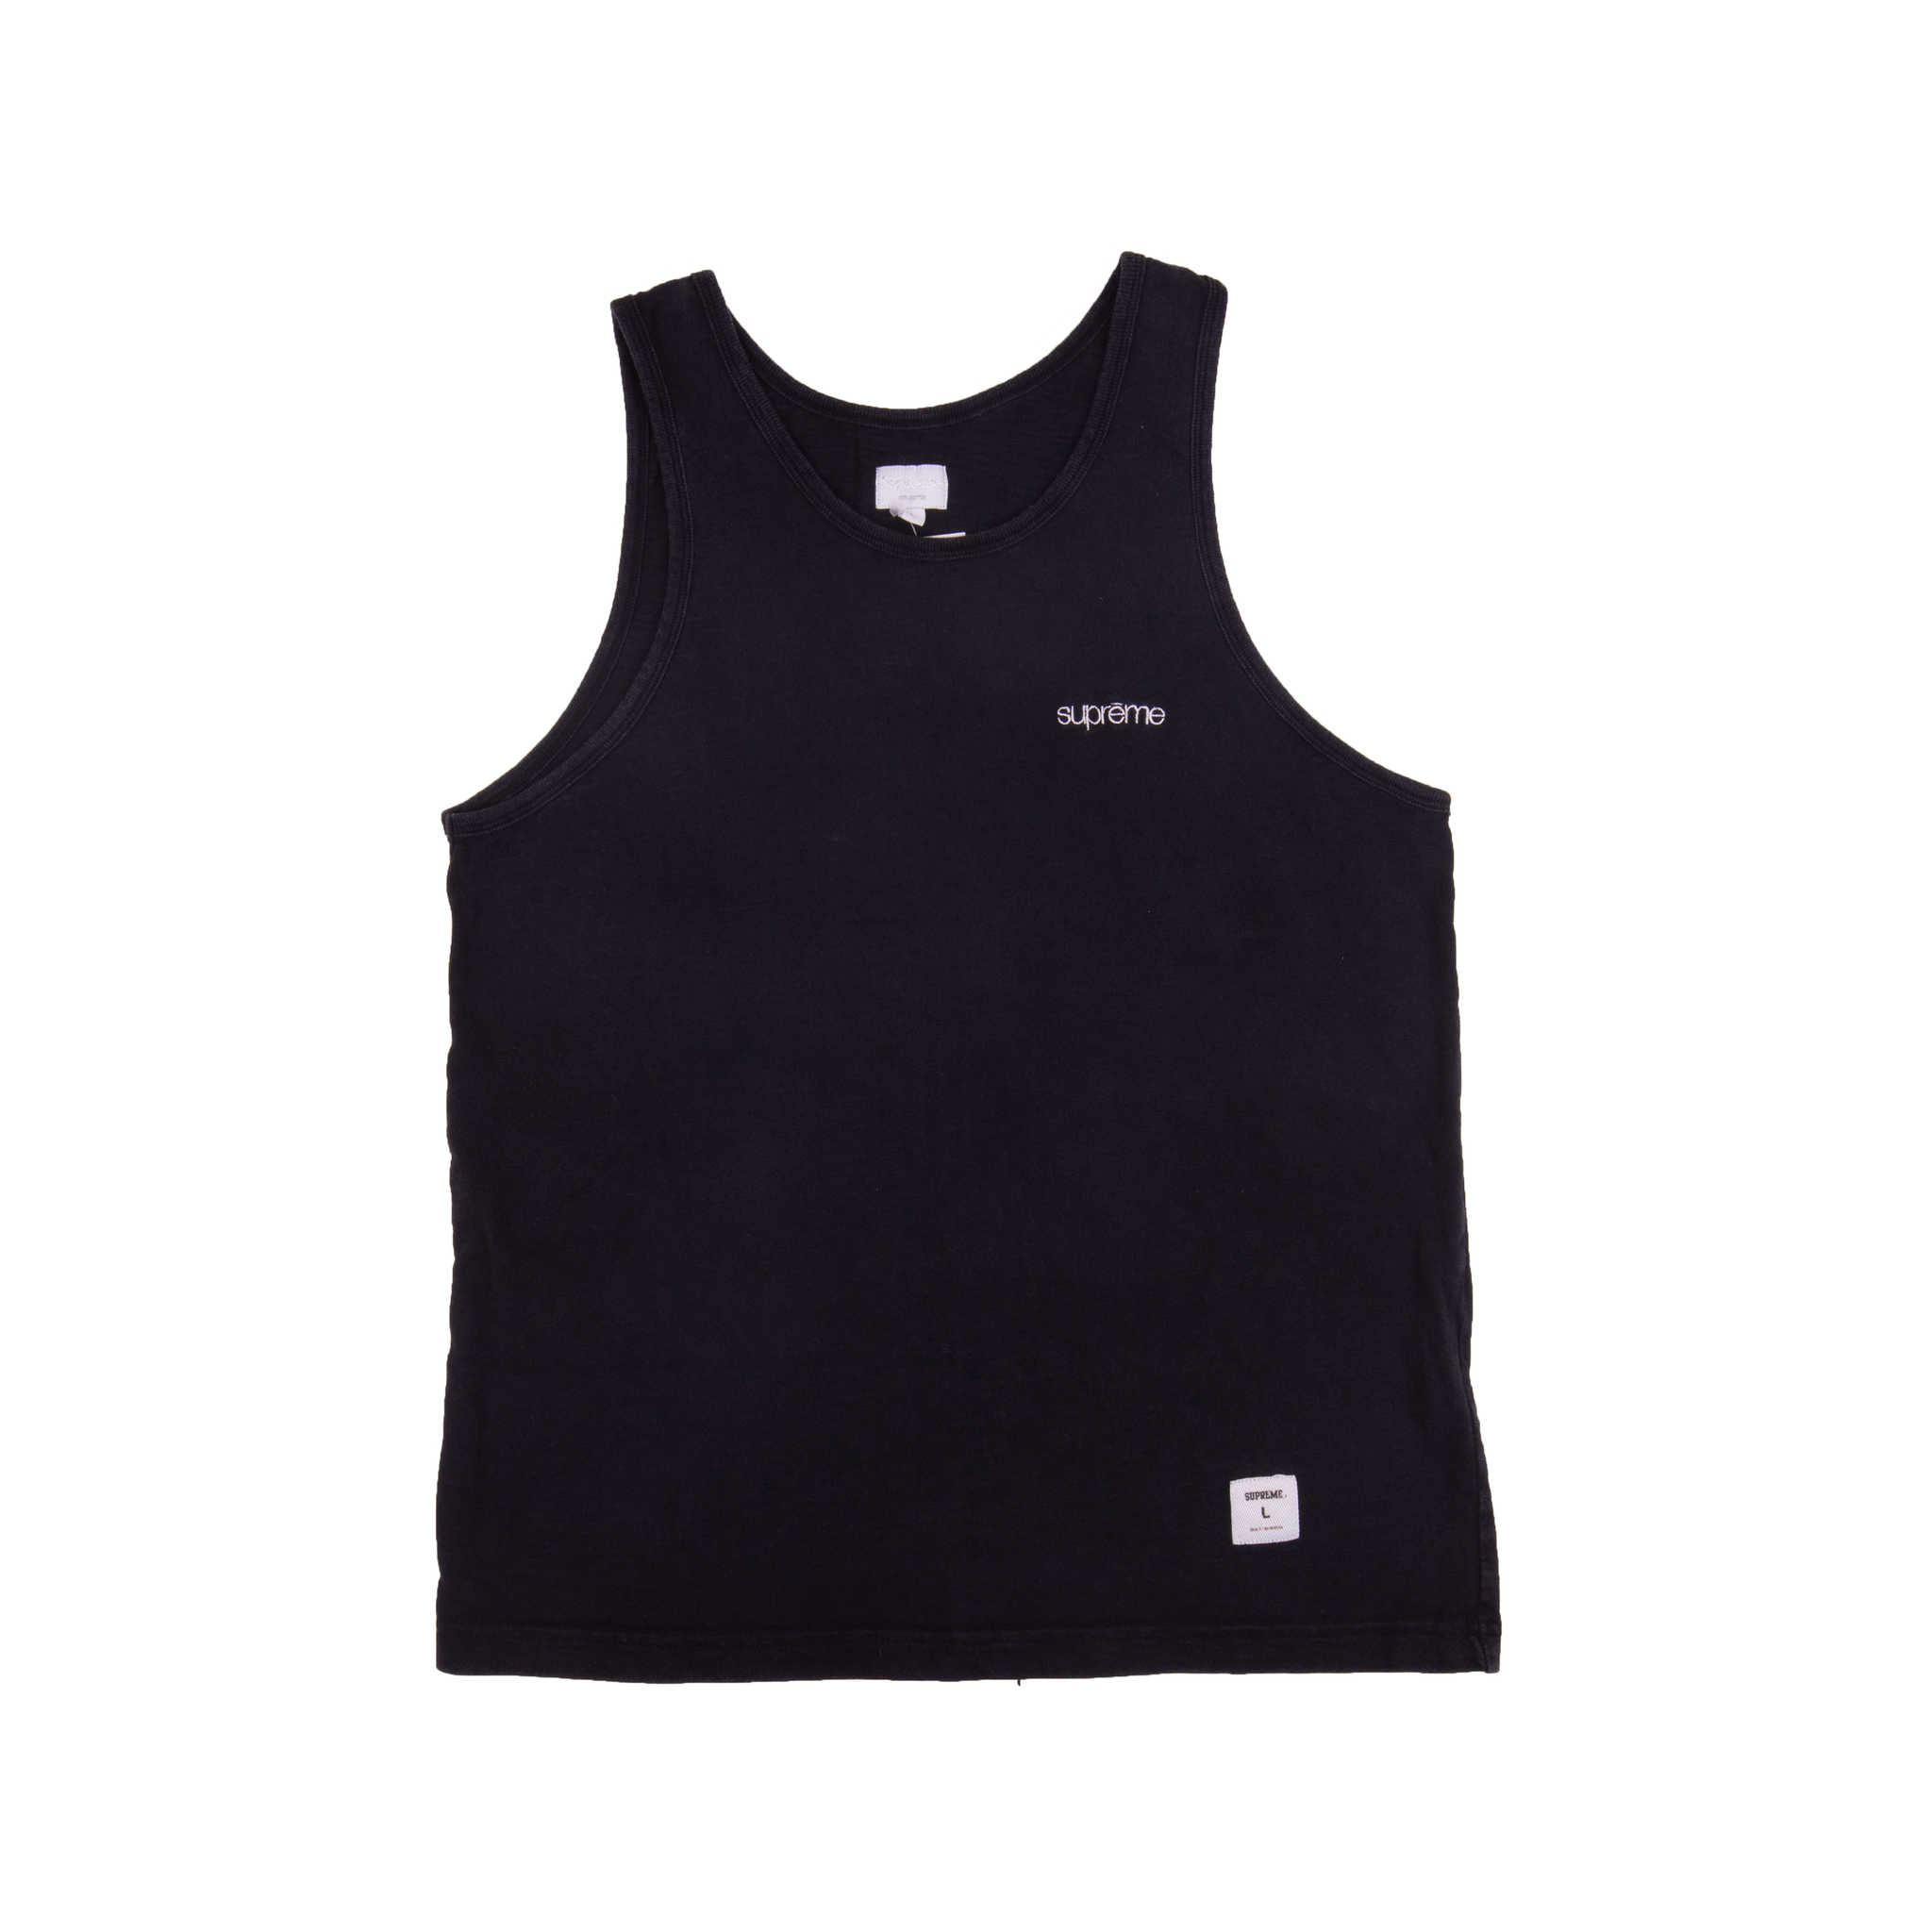 Supreme Black Tank Top